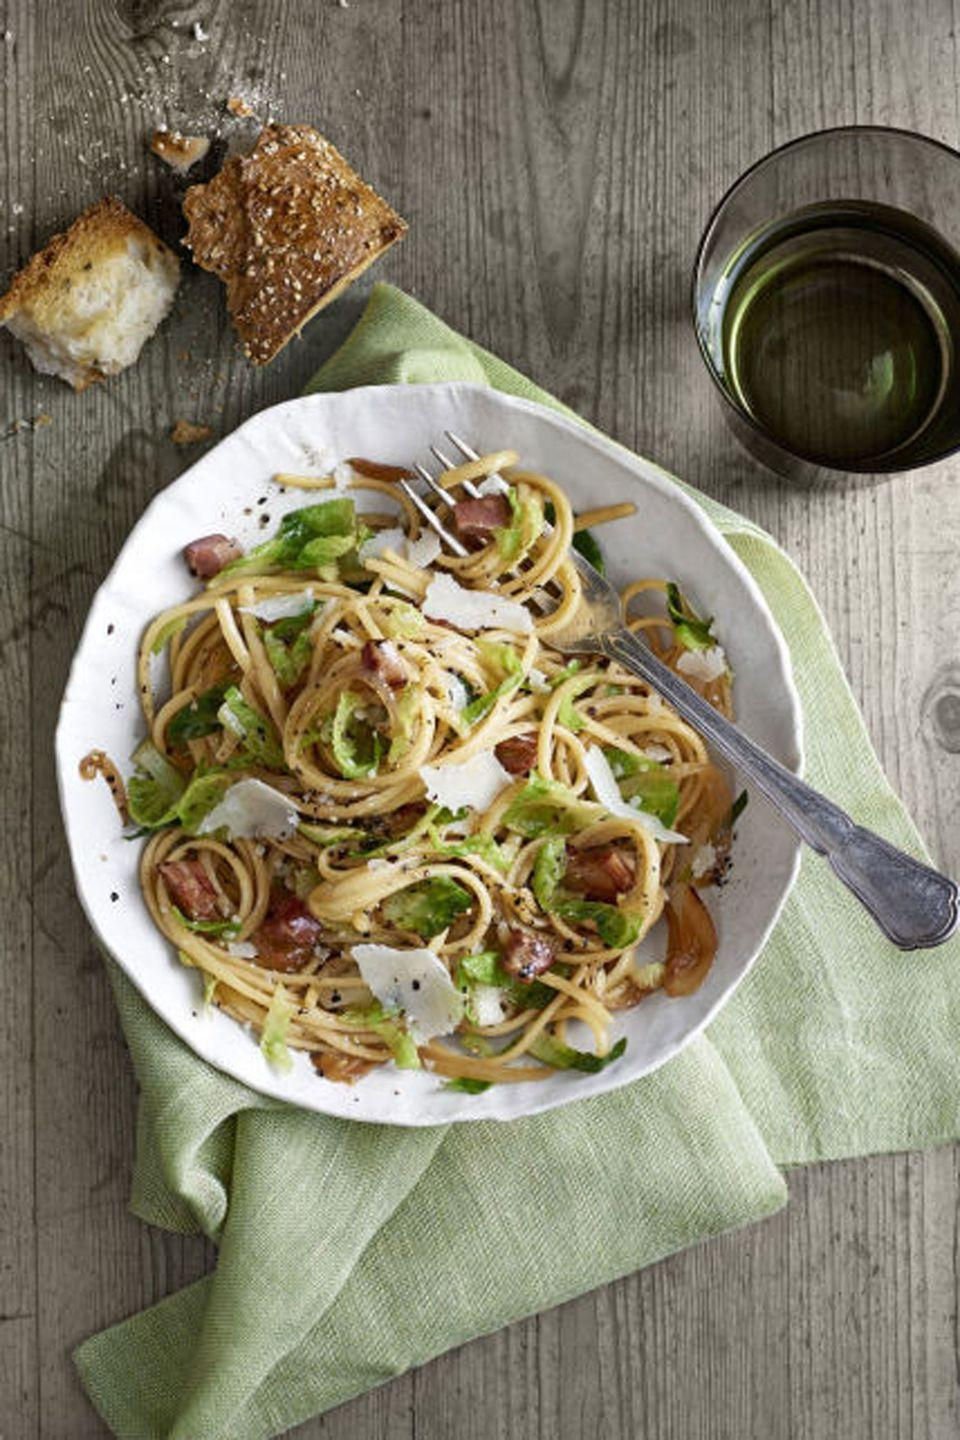 """<p>Crispy pancetta and caramelized onions give this simple dish plenty of flavor.</p><p><strong><a href=""""https://www.countryliving.com/food-drinks/recipes/a6337/pancetta-brussels-sprouts-linguini-recipe-clx0215/"""" rel=""""nofollow noopener"""" target=""""_blank"""" data-ylk=""""slk:Get the recipe"""" class=""""link rapid-noclick-resp"""">Get the recipe</a>.</strong></p>"""